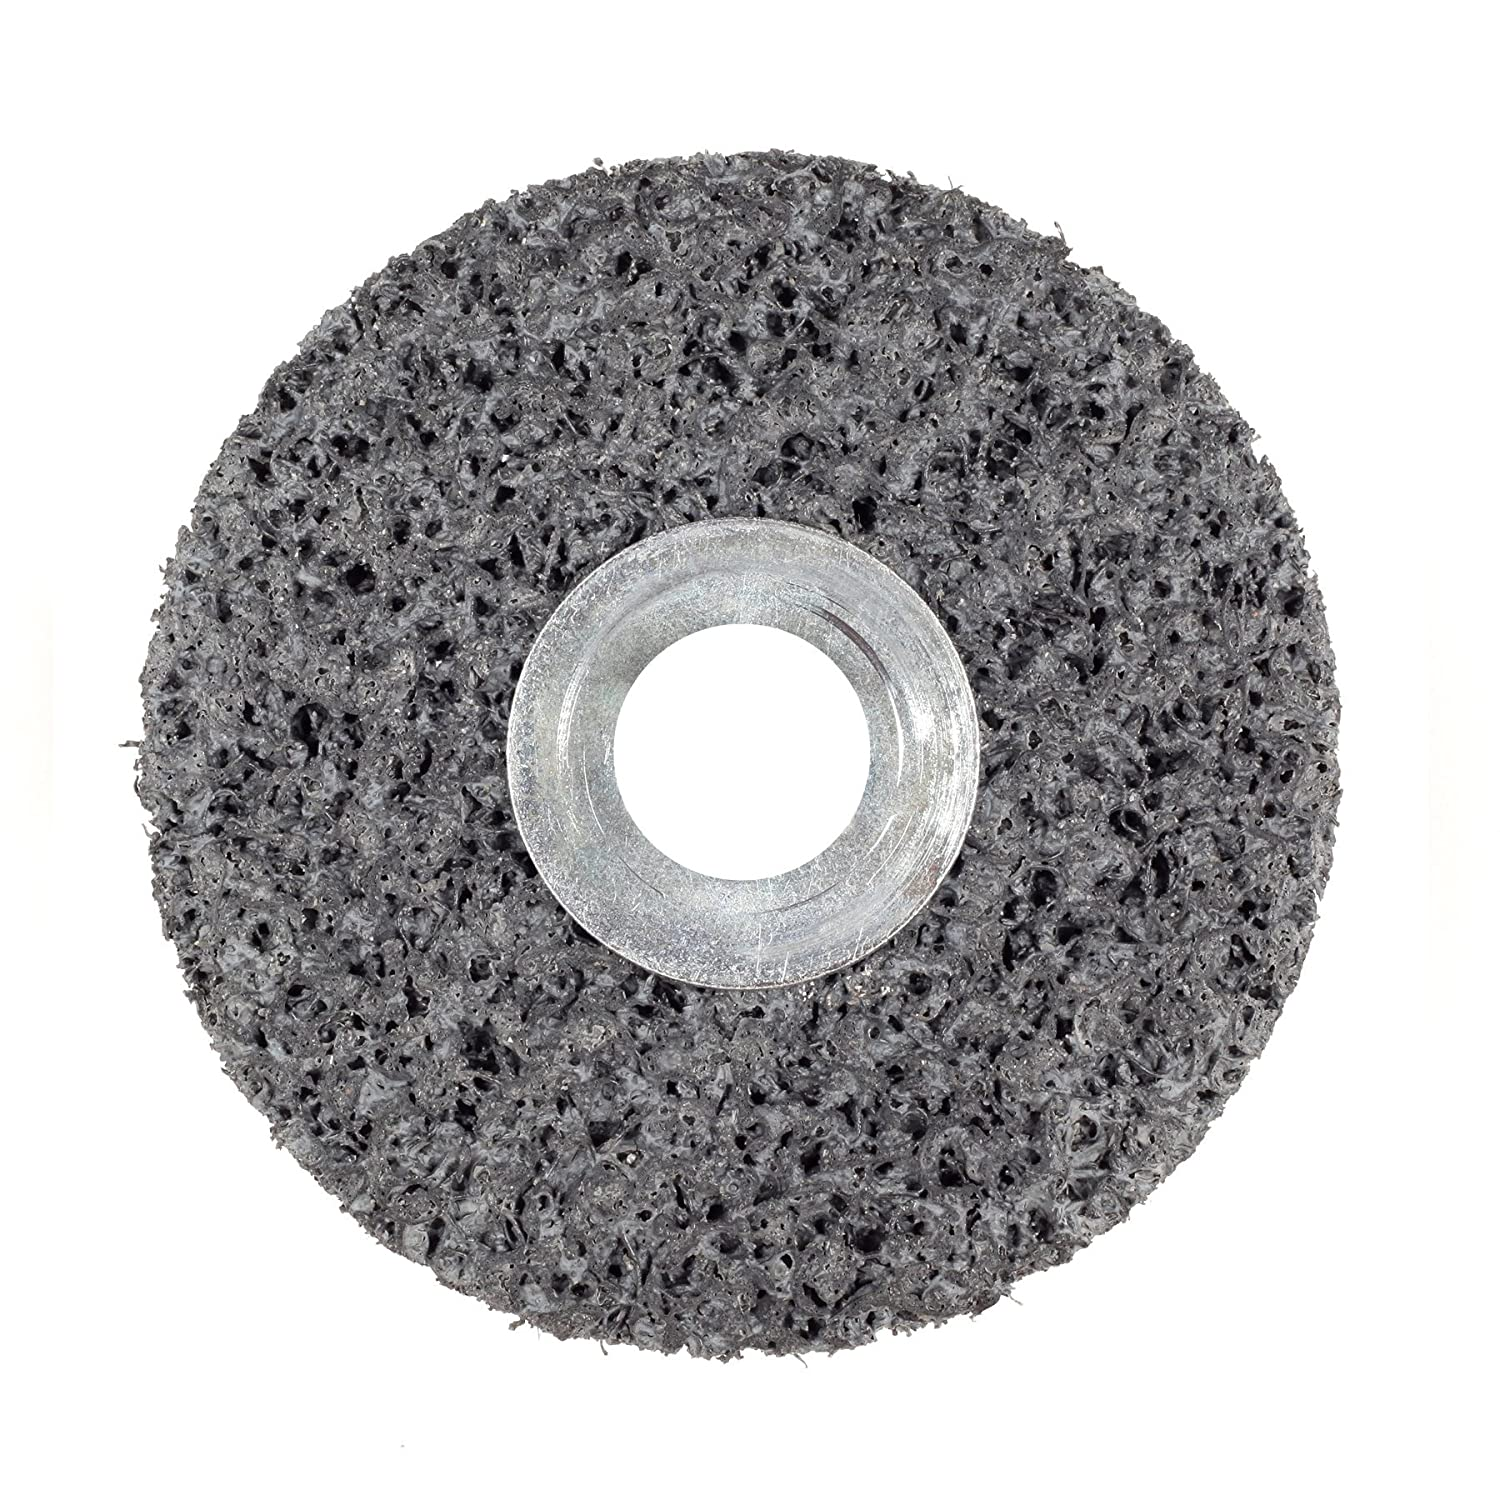 35100 rpm 1 Diameter x 1 Width TM Silicon Carbide 3M CS-UW 3//16 Arbor 7S Extra Coarse Grit Scotch-Brite Clean and Strip Unitized Wheel Pack of 50